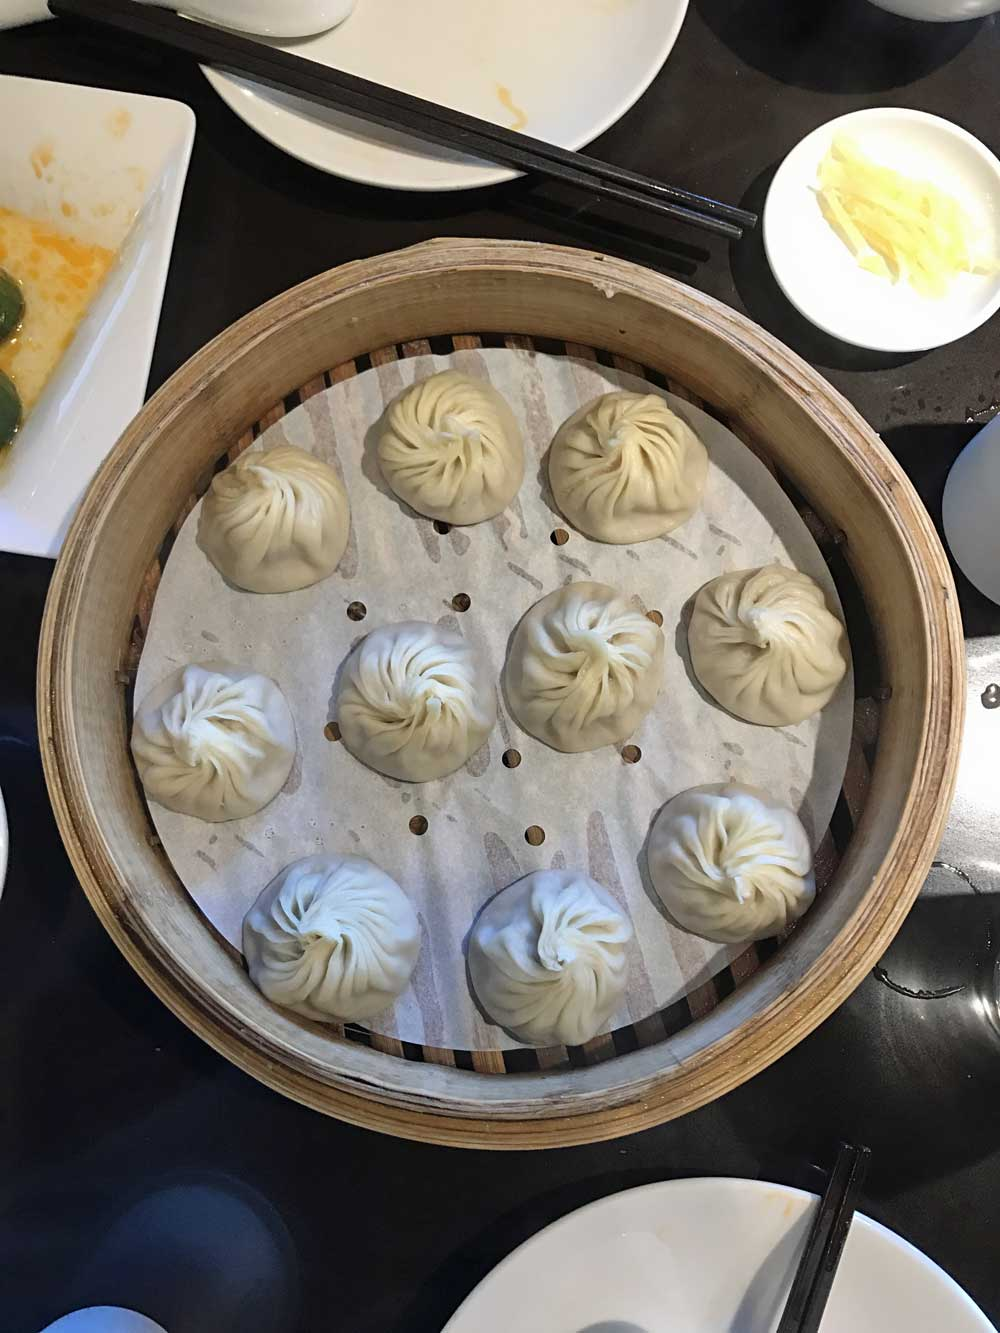 My Xiao Long Bao feast (left), a and few DTF artists (right).